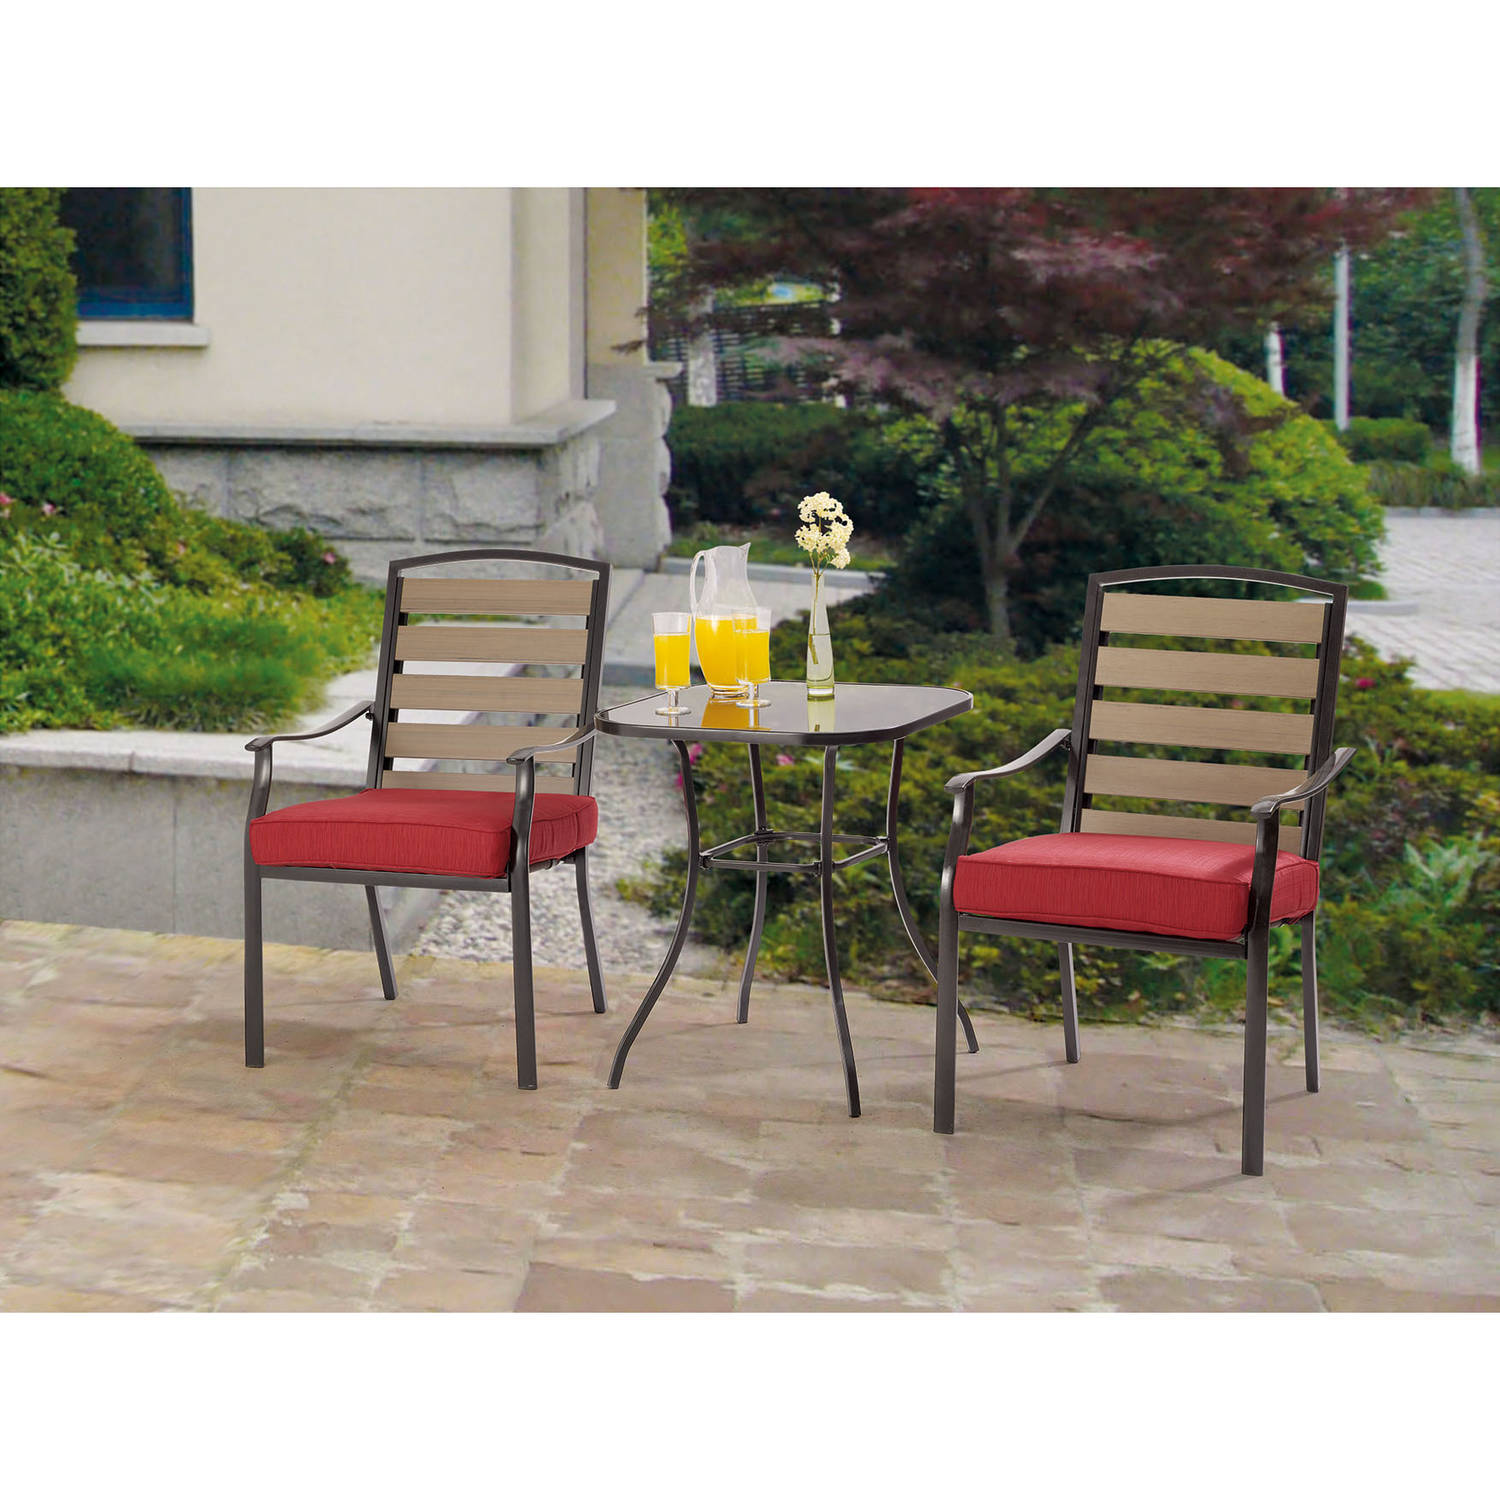 Better Homes And Gardens Tarleton 3 Piece Bistro Set, Seats 2   Walmart.com